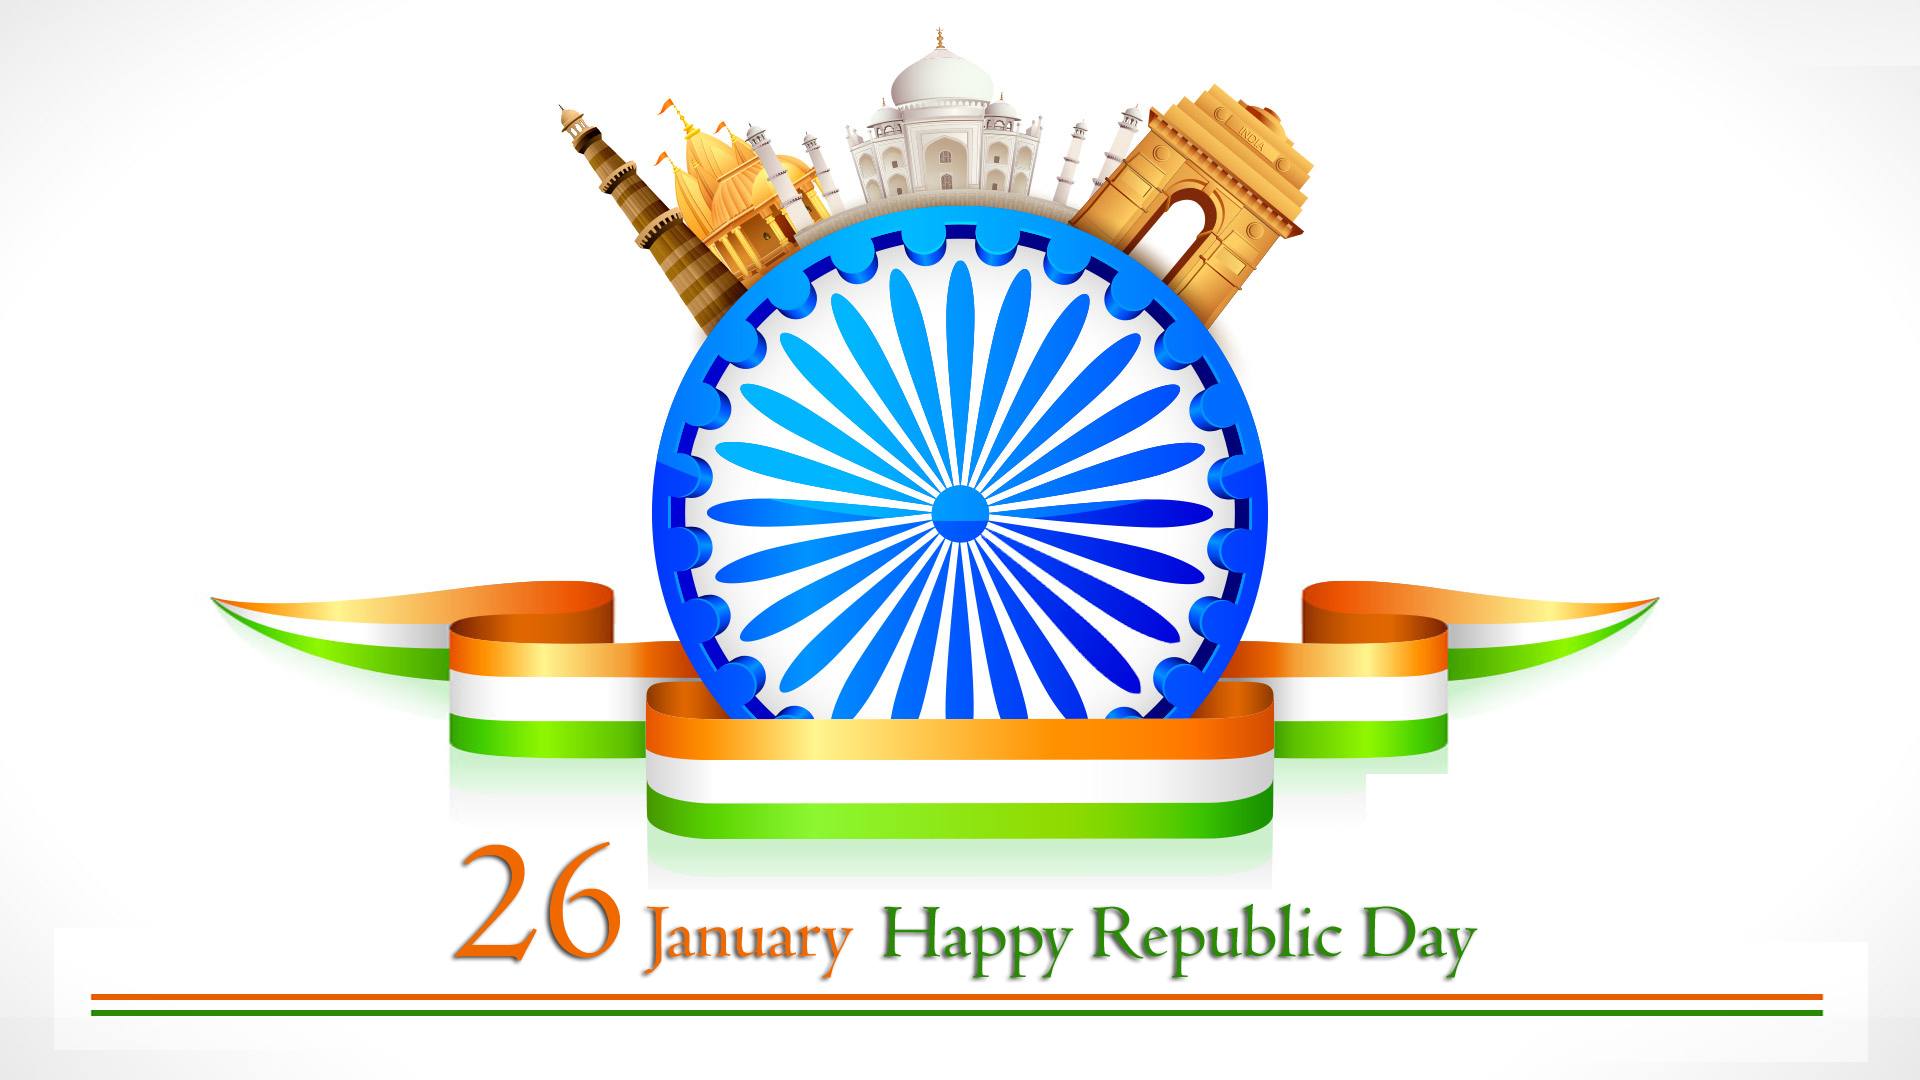 indian republic day in hindi 26 january republic day 2018 essay in hindi for students:- all class 1, 2, 3, 4, 5 and 6 students, kids, children will get here essay on re.